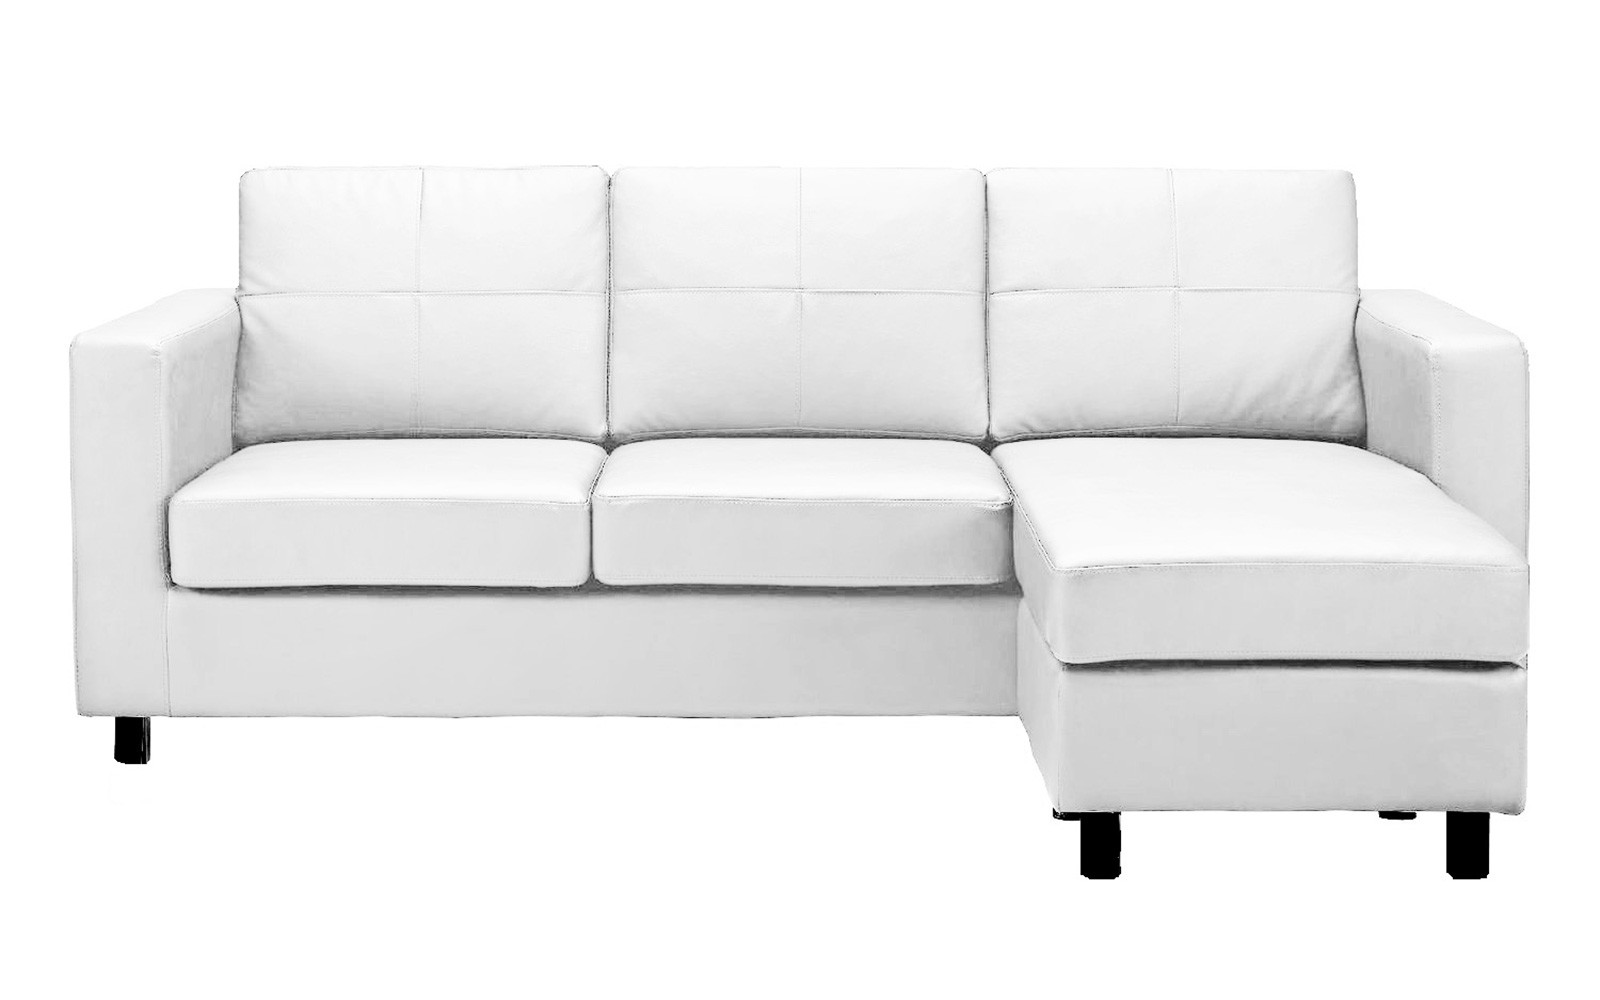 Modern Reversible Small Space Configurable Bonded Leather Sectional Sofa -  Walmart